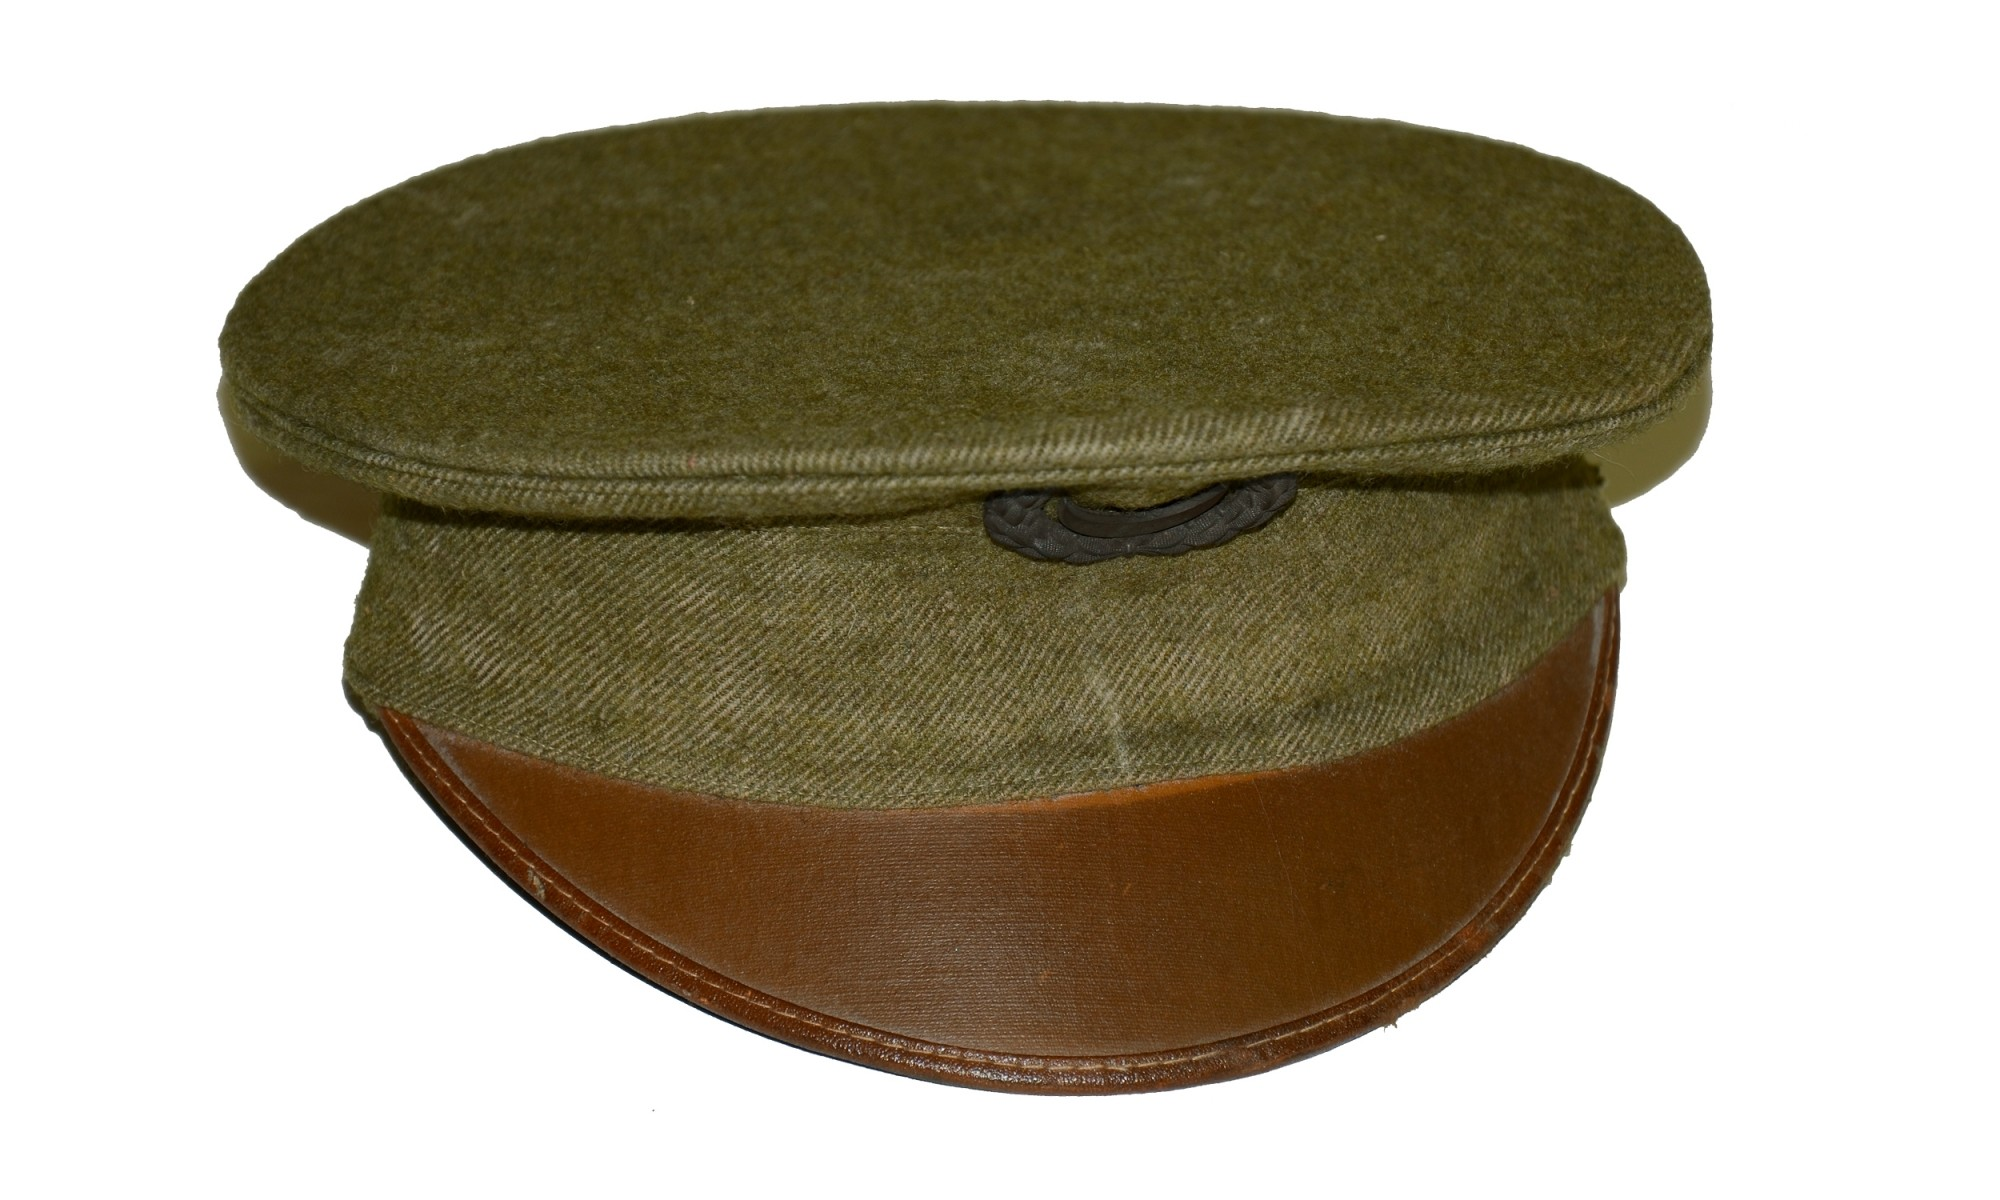 US MODEL 1910 ENLISTED MAN'S VISOR CAP WITH 1905 INSIGNIA